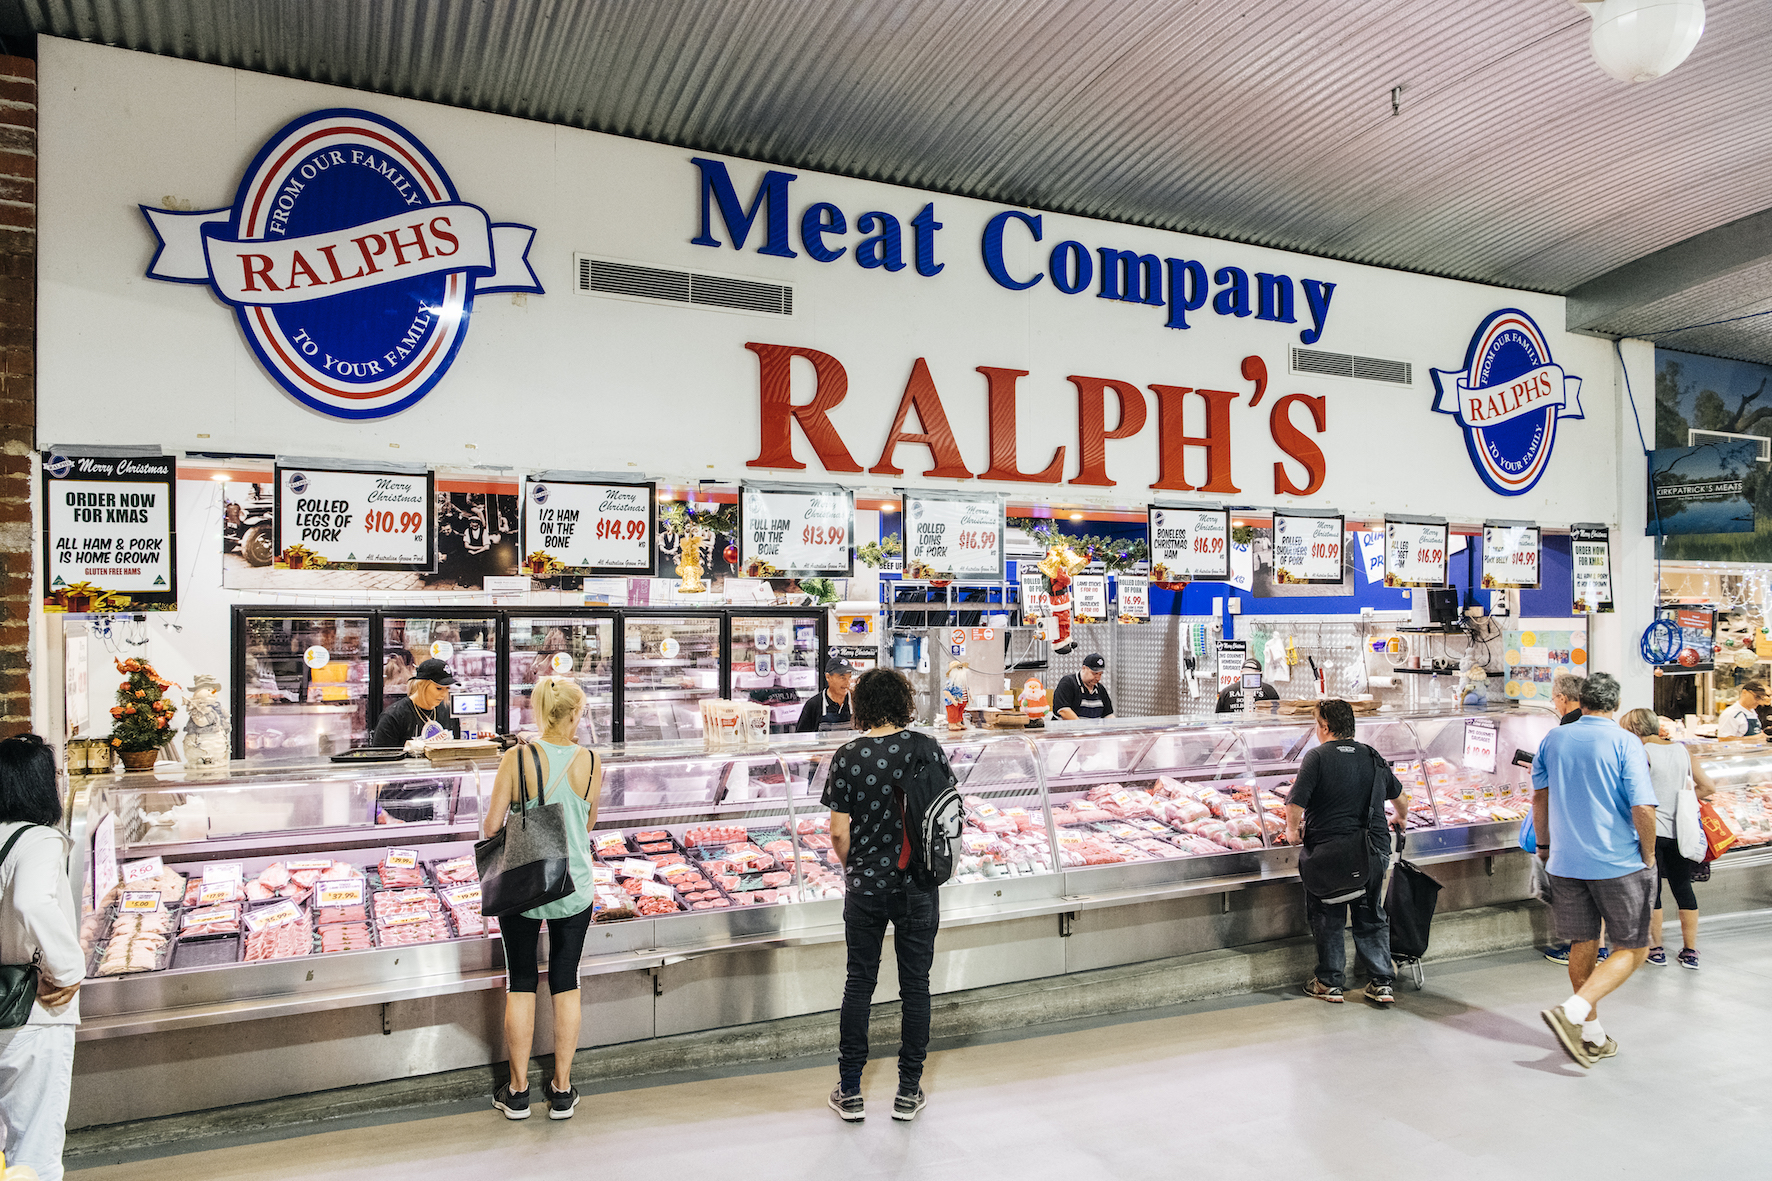 Ralph's Meat Company